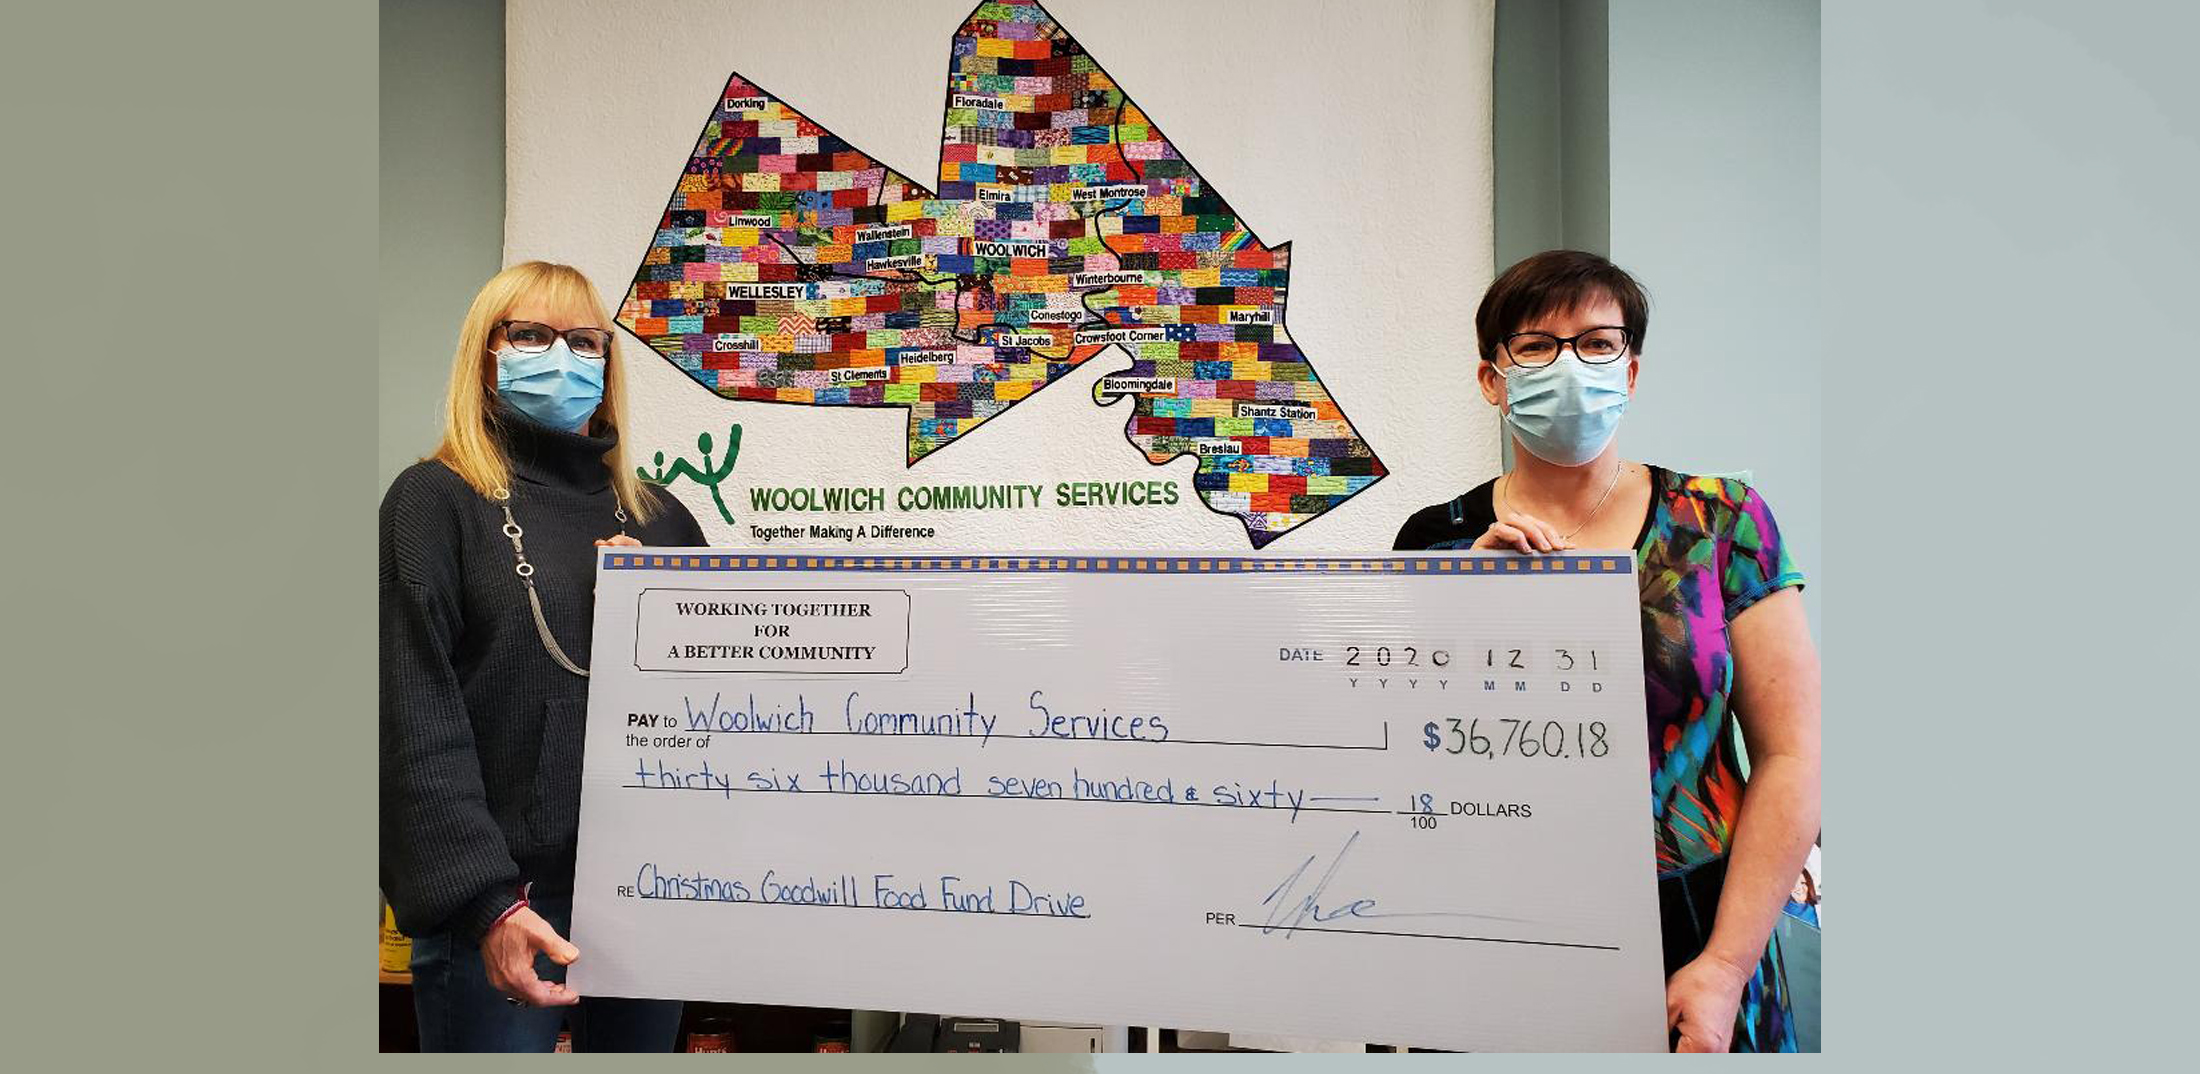 community fundraiser helping donating donations fundraiser woolwich